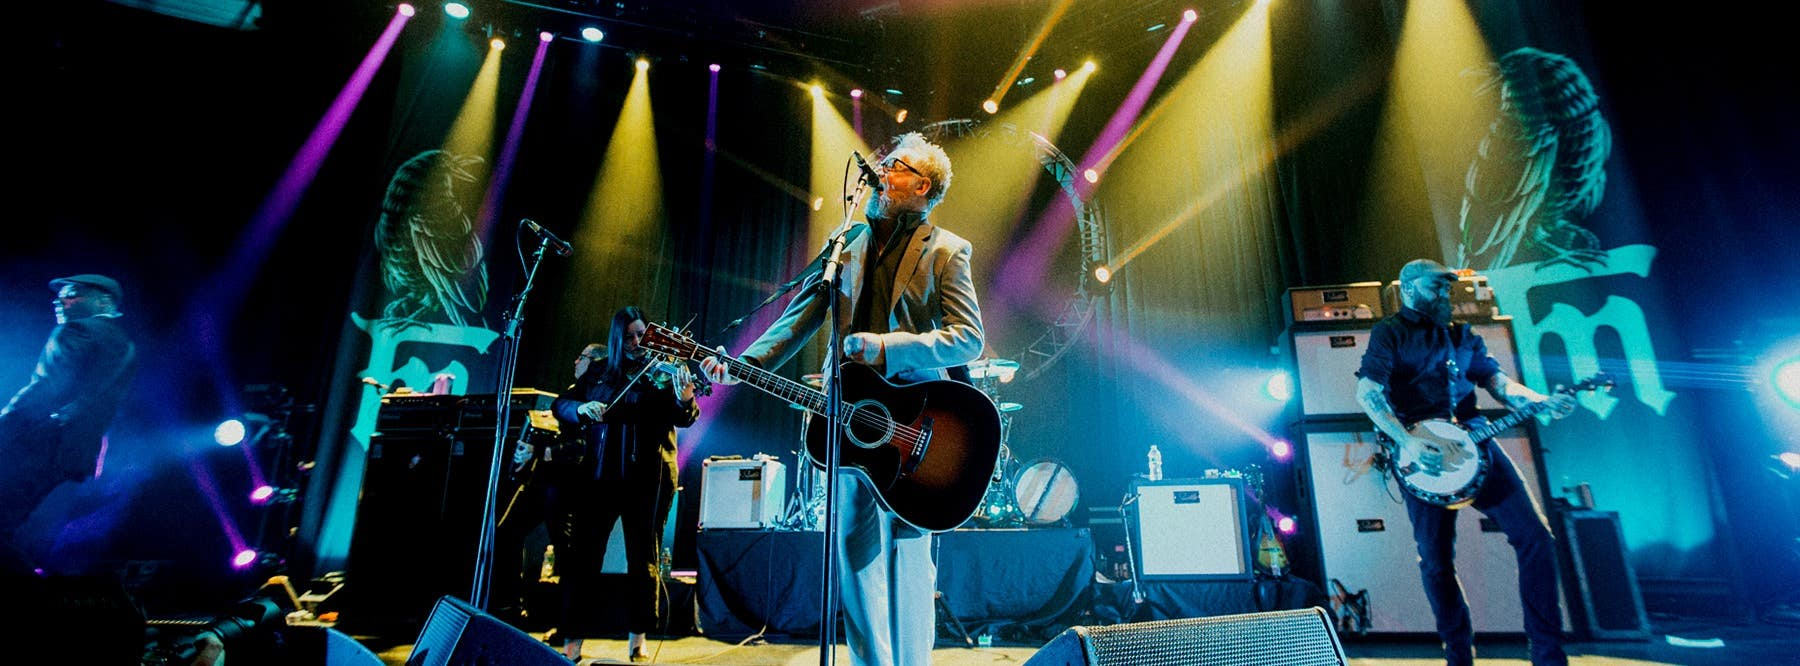 Flogging Molly performing on stage